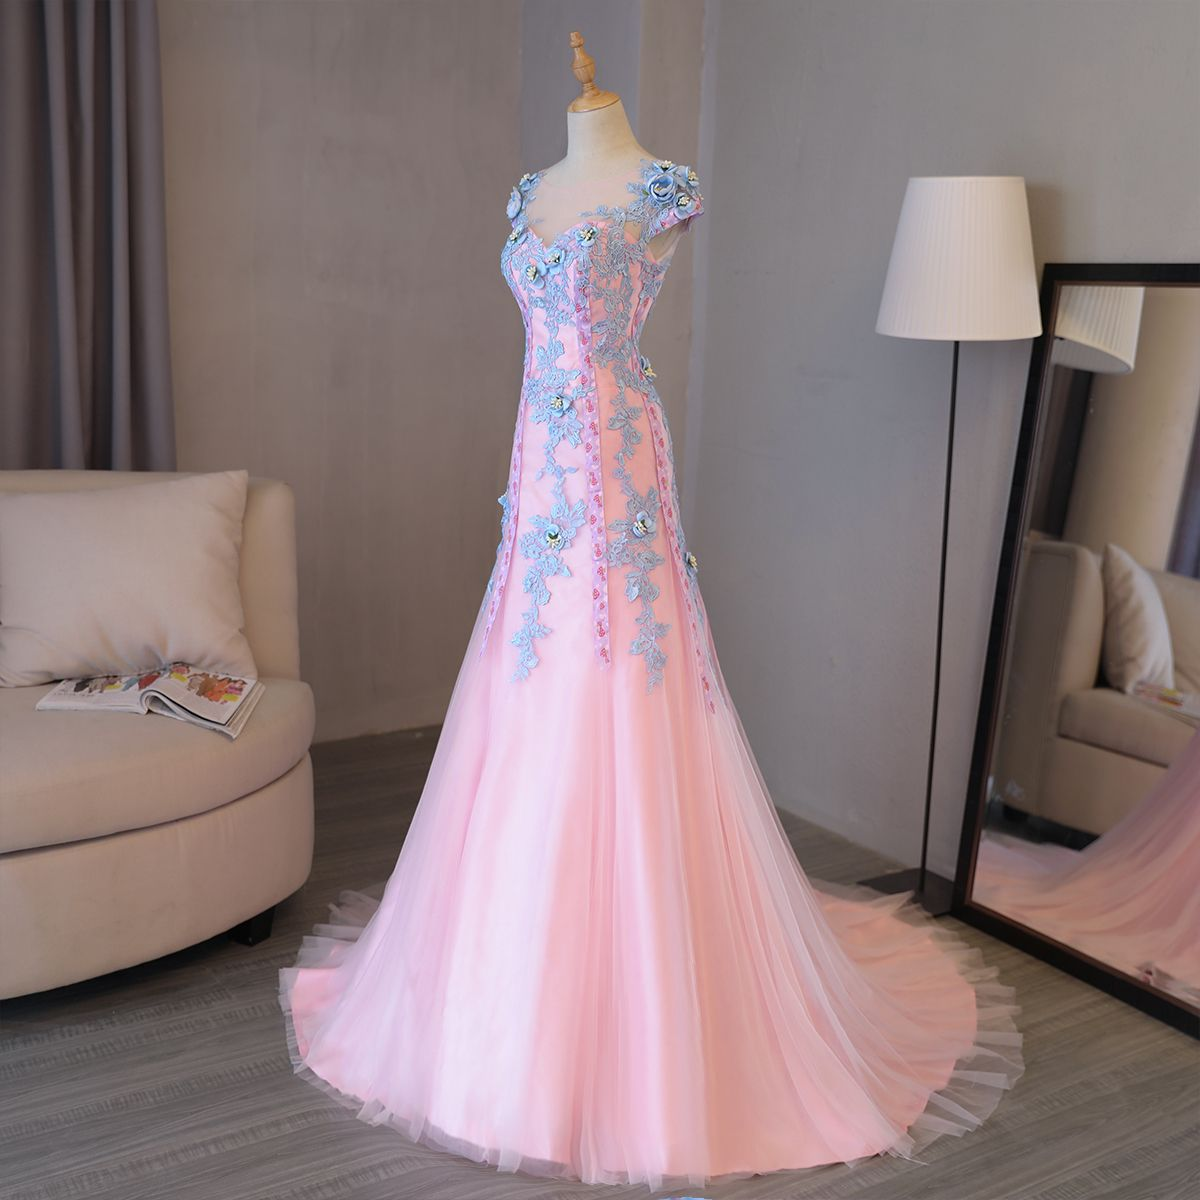 Chic / Beautiful Evening Party Formal Dresses 2017 Candy Pink Evening Dresses  Sheath / Fit Chapel Train Scoop Neck Short Sleeve Backless Artificial Flowers Lace Appliques